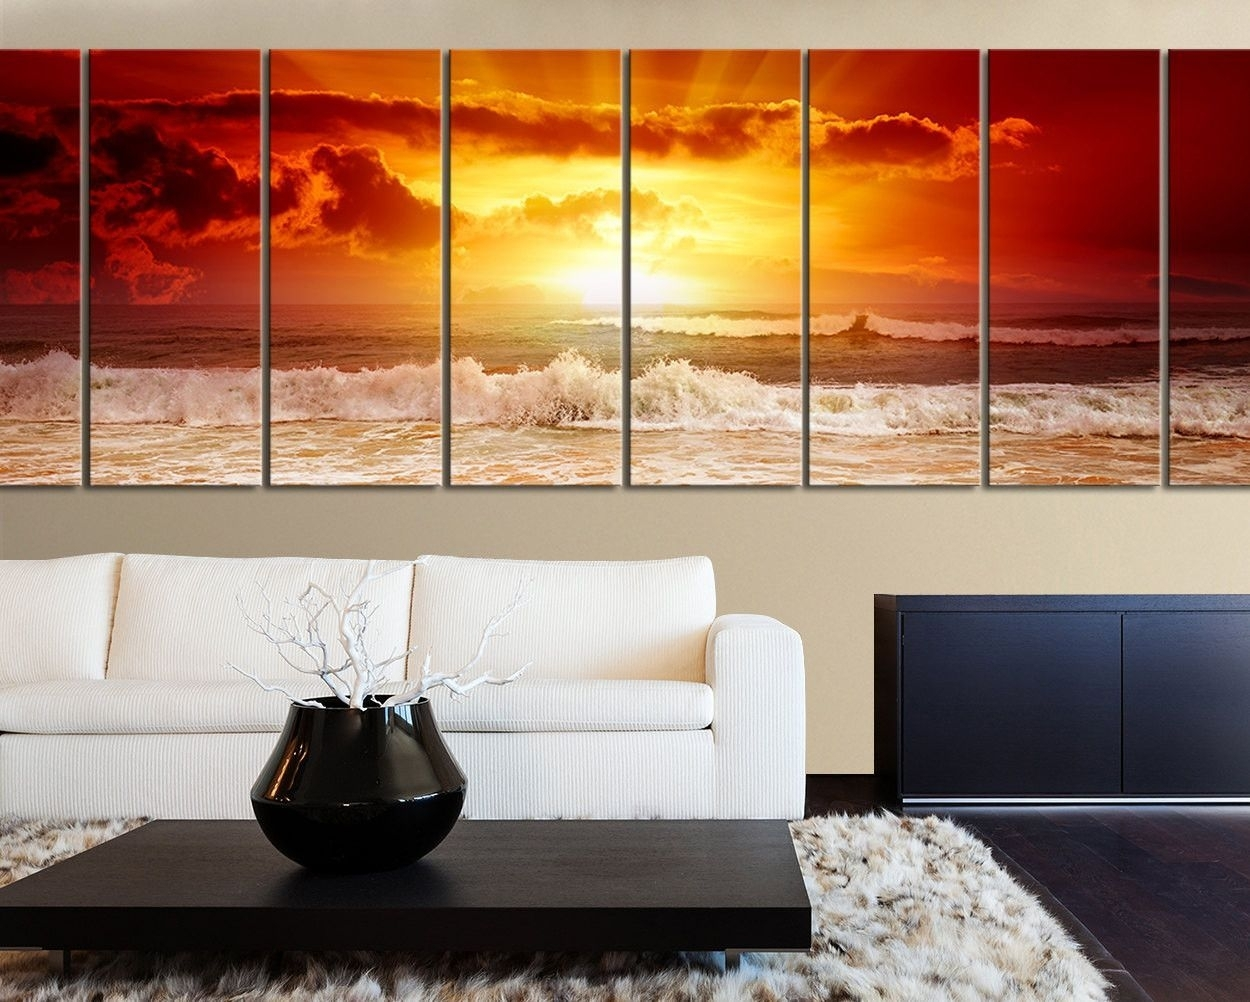 Large Wall Art Canvas Sunset Ocean Print – Xxl Wall Canvas Art In Most Current Ocean Canvas Wall Art (View 15 of 15)